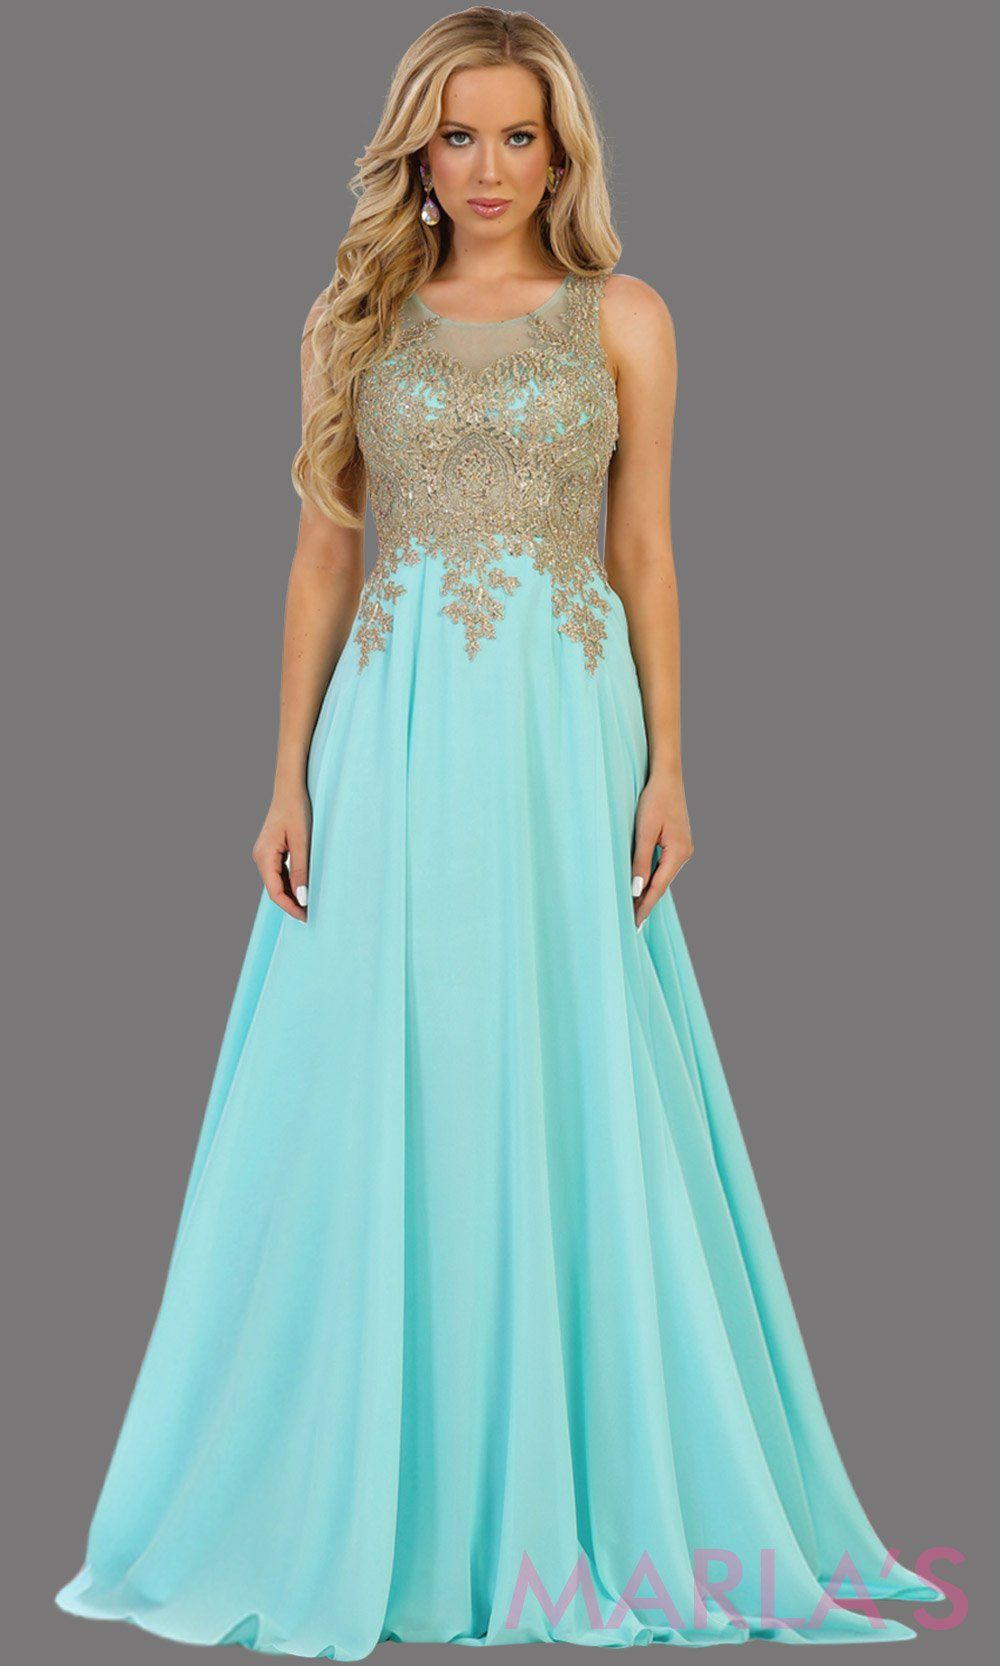 Magnificent Evening Gowns For Wedding Ideas - All Wedding Dresses ...